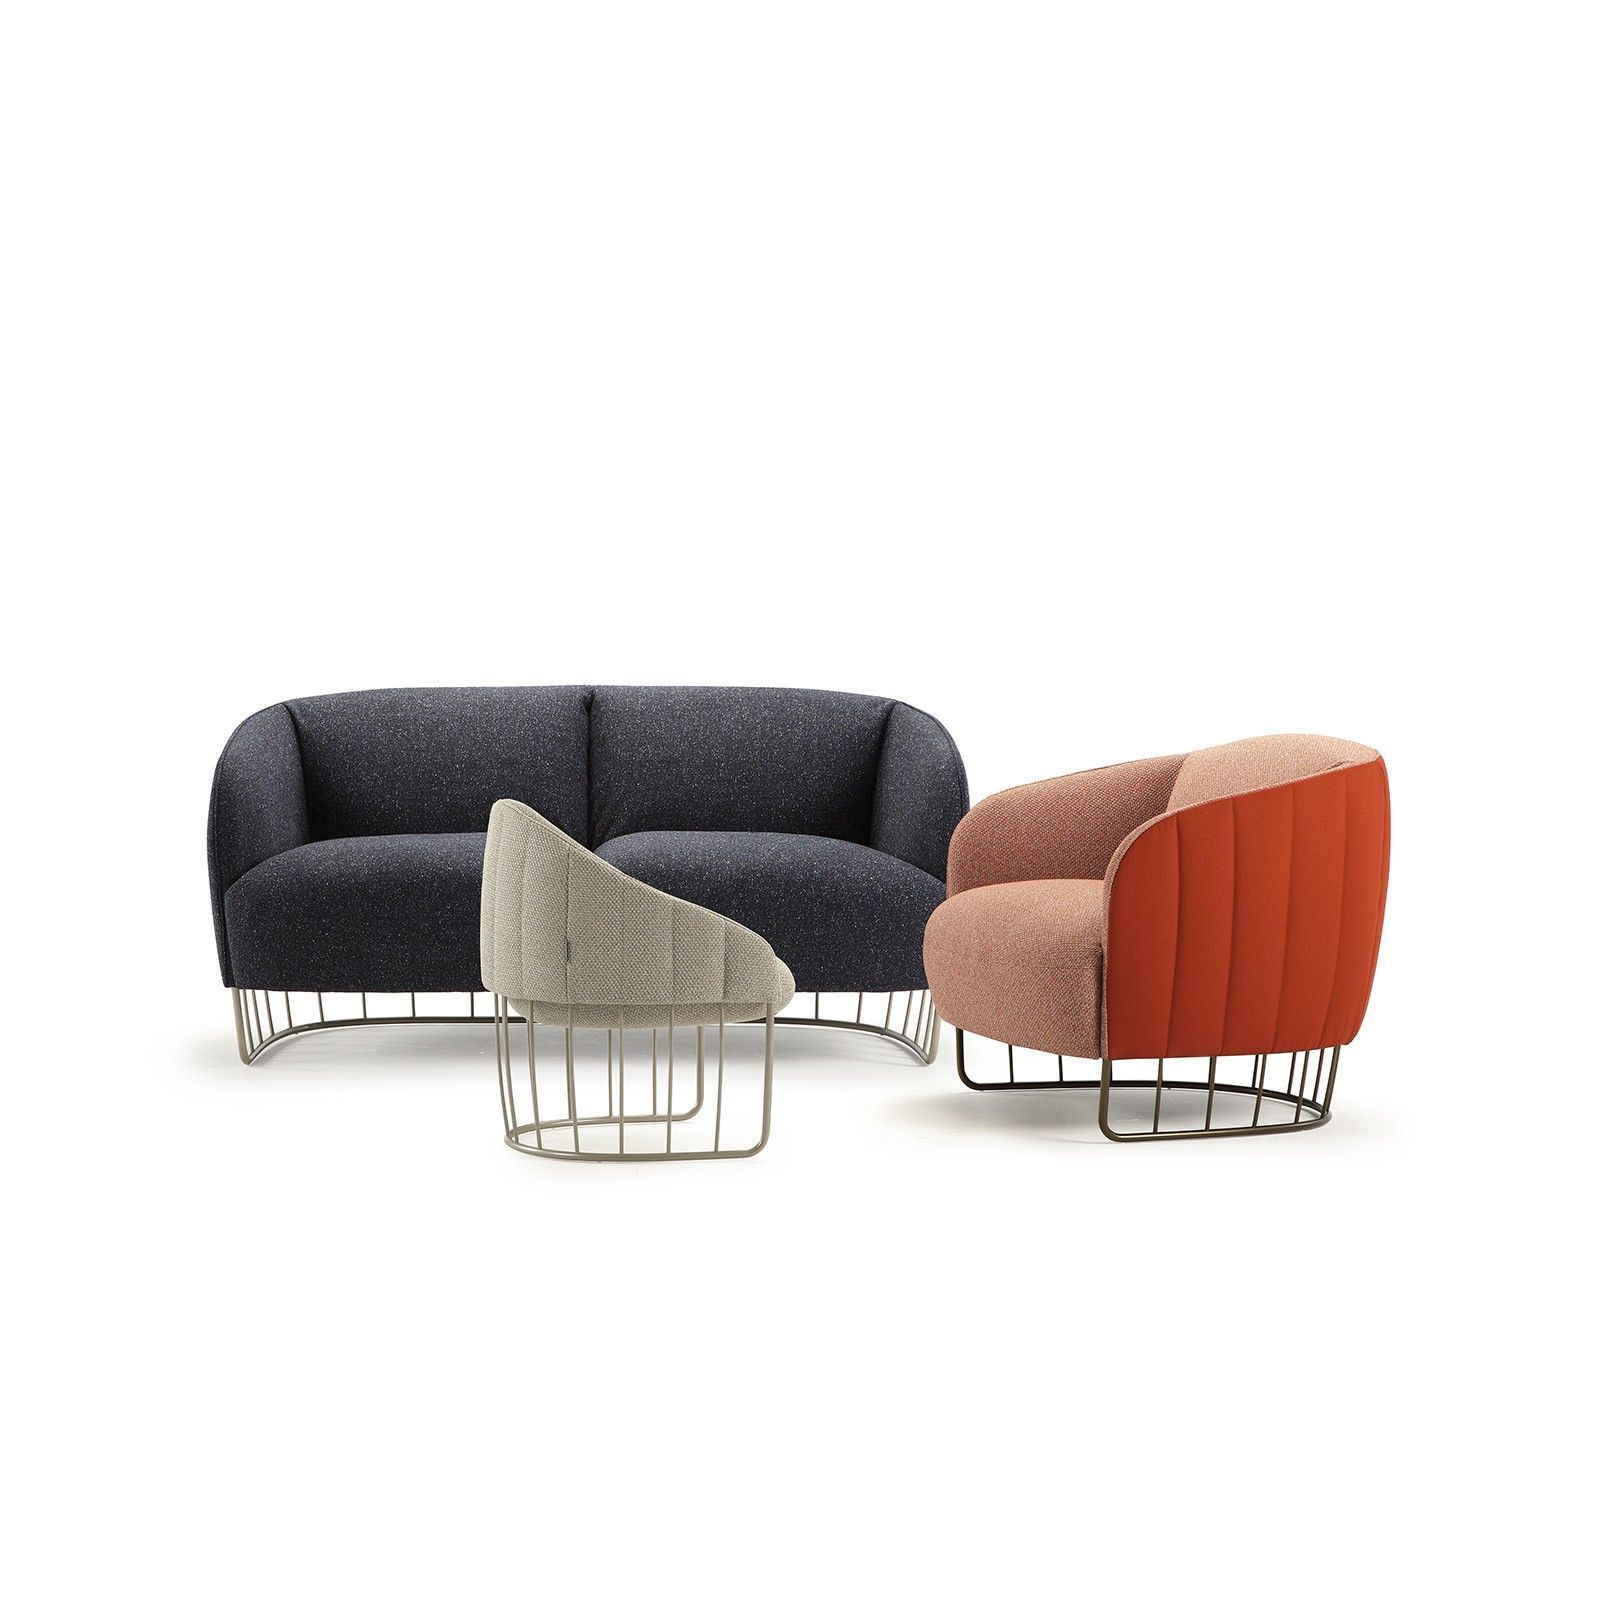 lounge ke zu furniture residential and contract furniture rh pinterest co uk